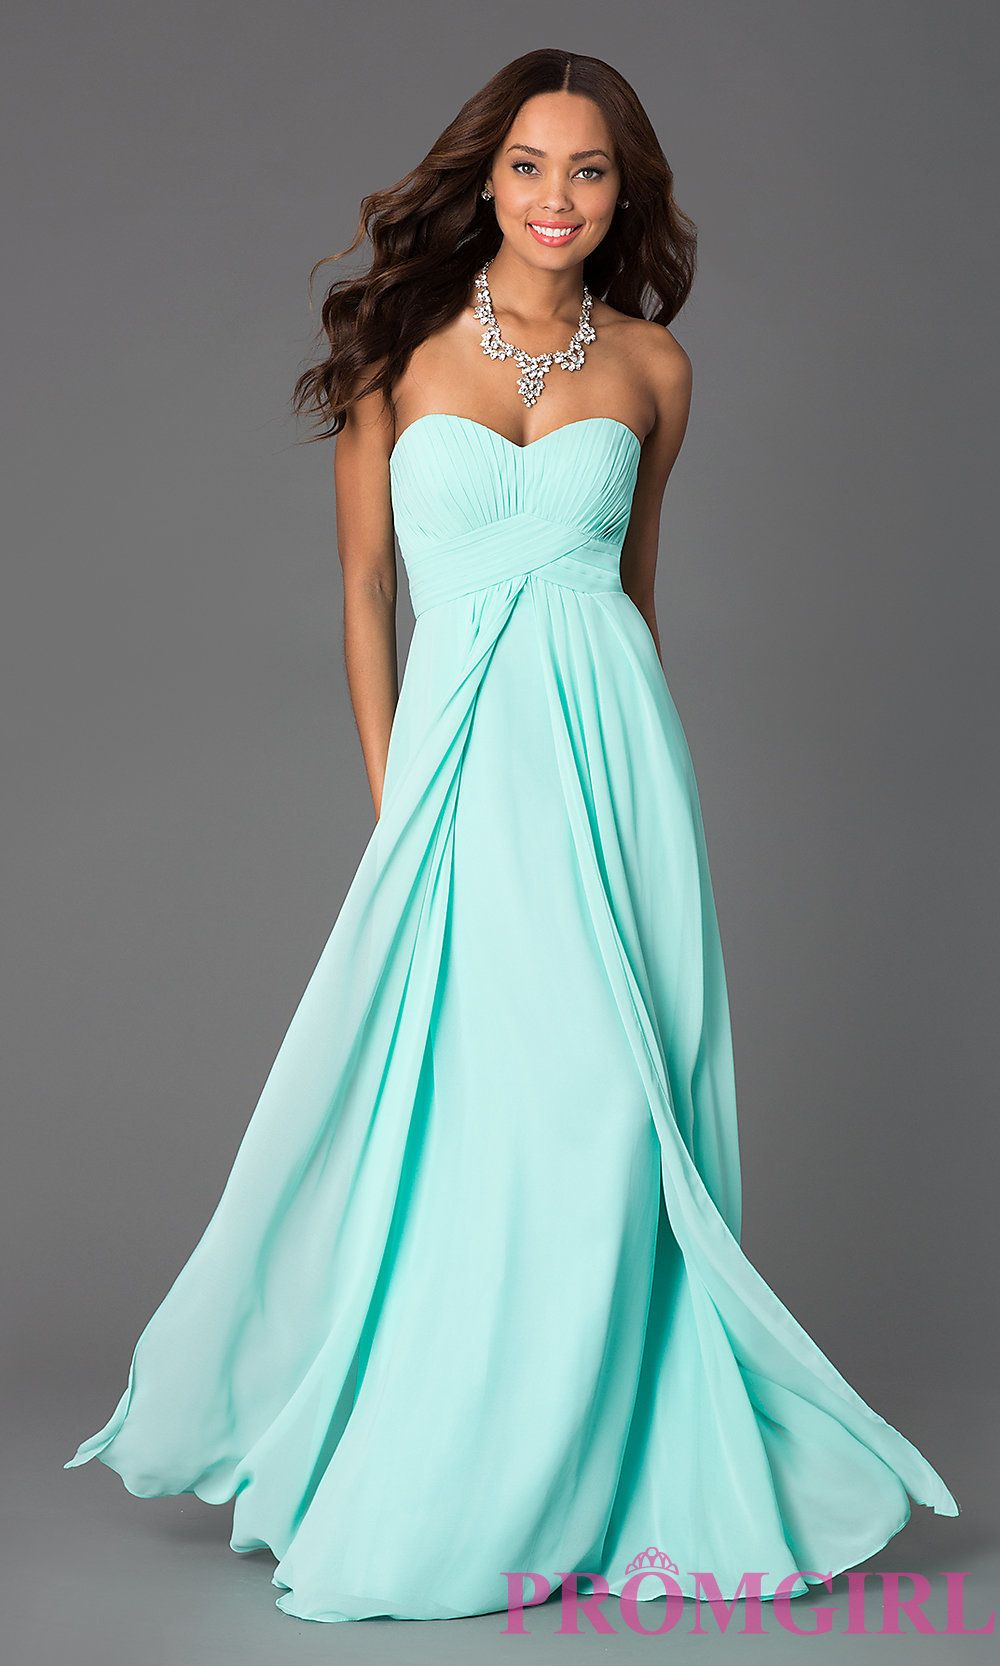 Prom Dresses for Tall Girls | Dress images